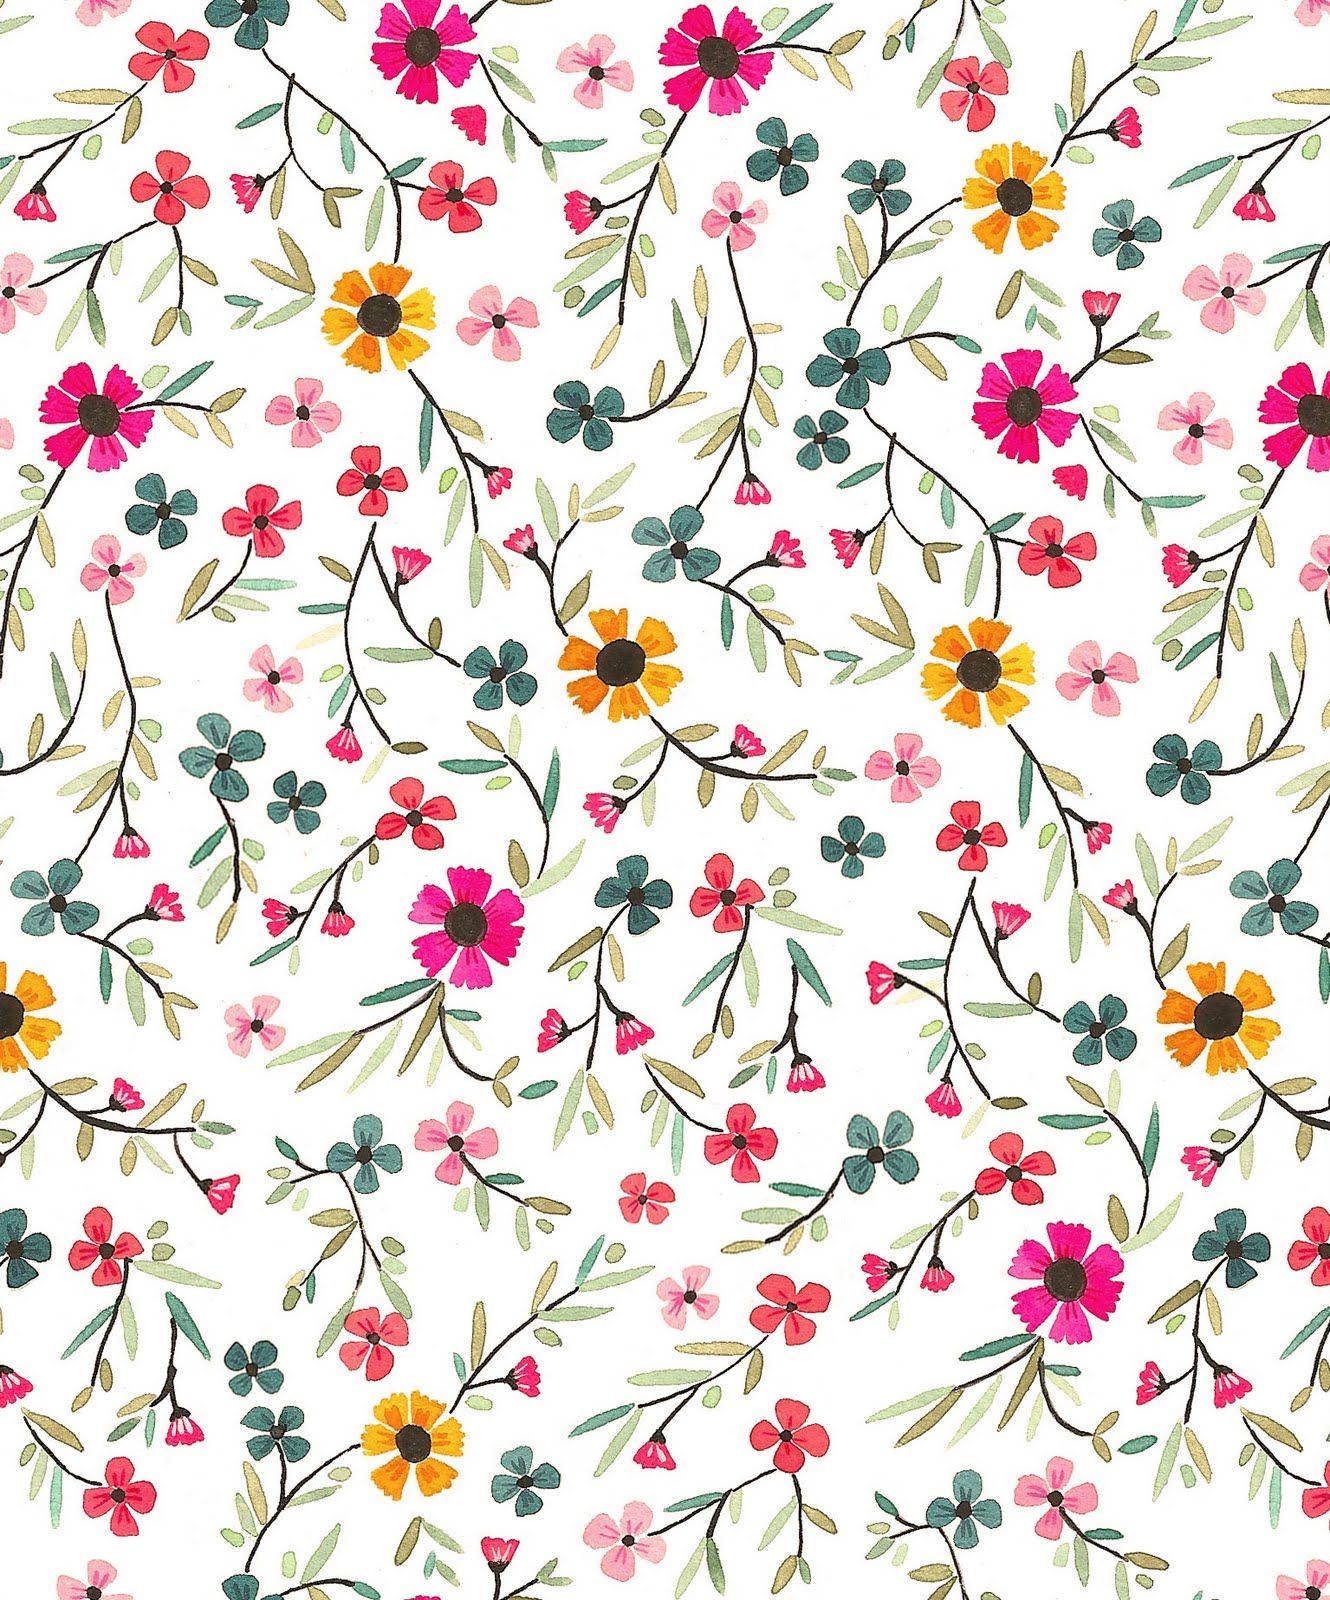 floral pattern estampado floral patterns pinterest